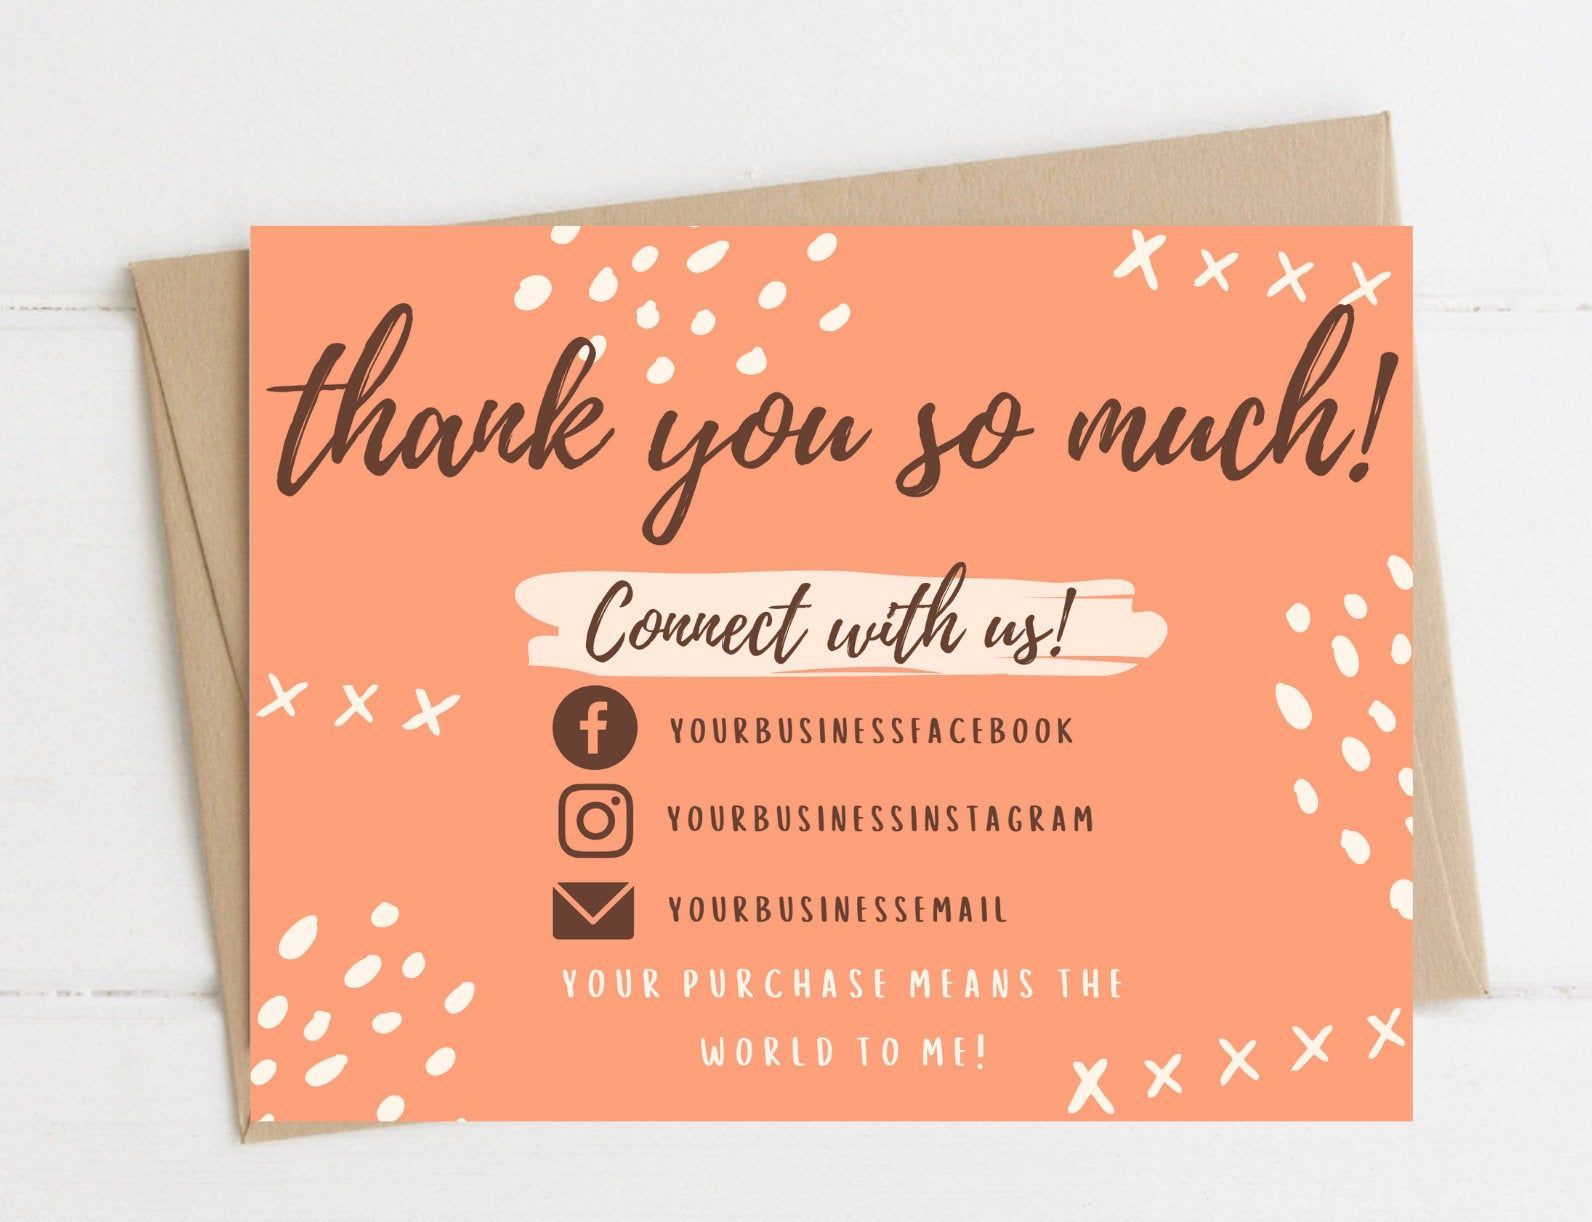 Instant Download Thank You Card Editable And Printable Thank You Cards Thank You Car In 2020 Printable Thank You Cards Thank You Card Design Business Thank You Cards